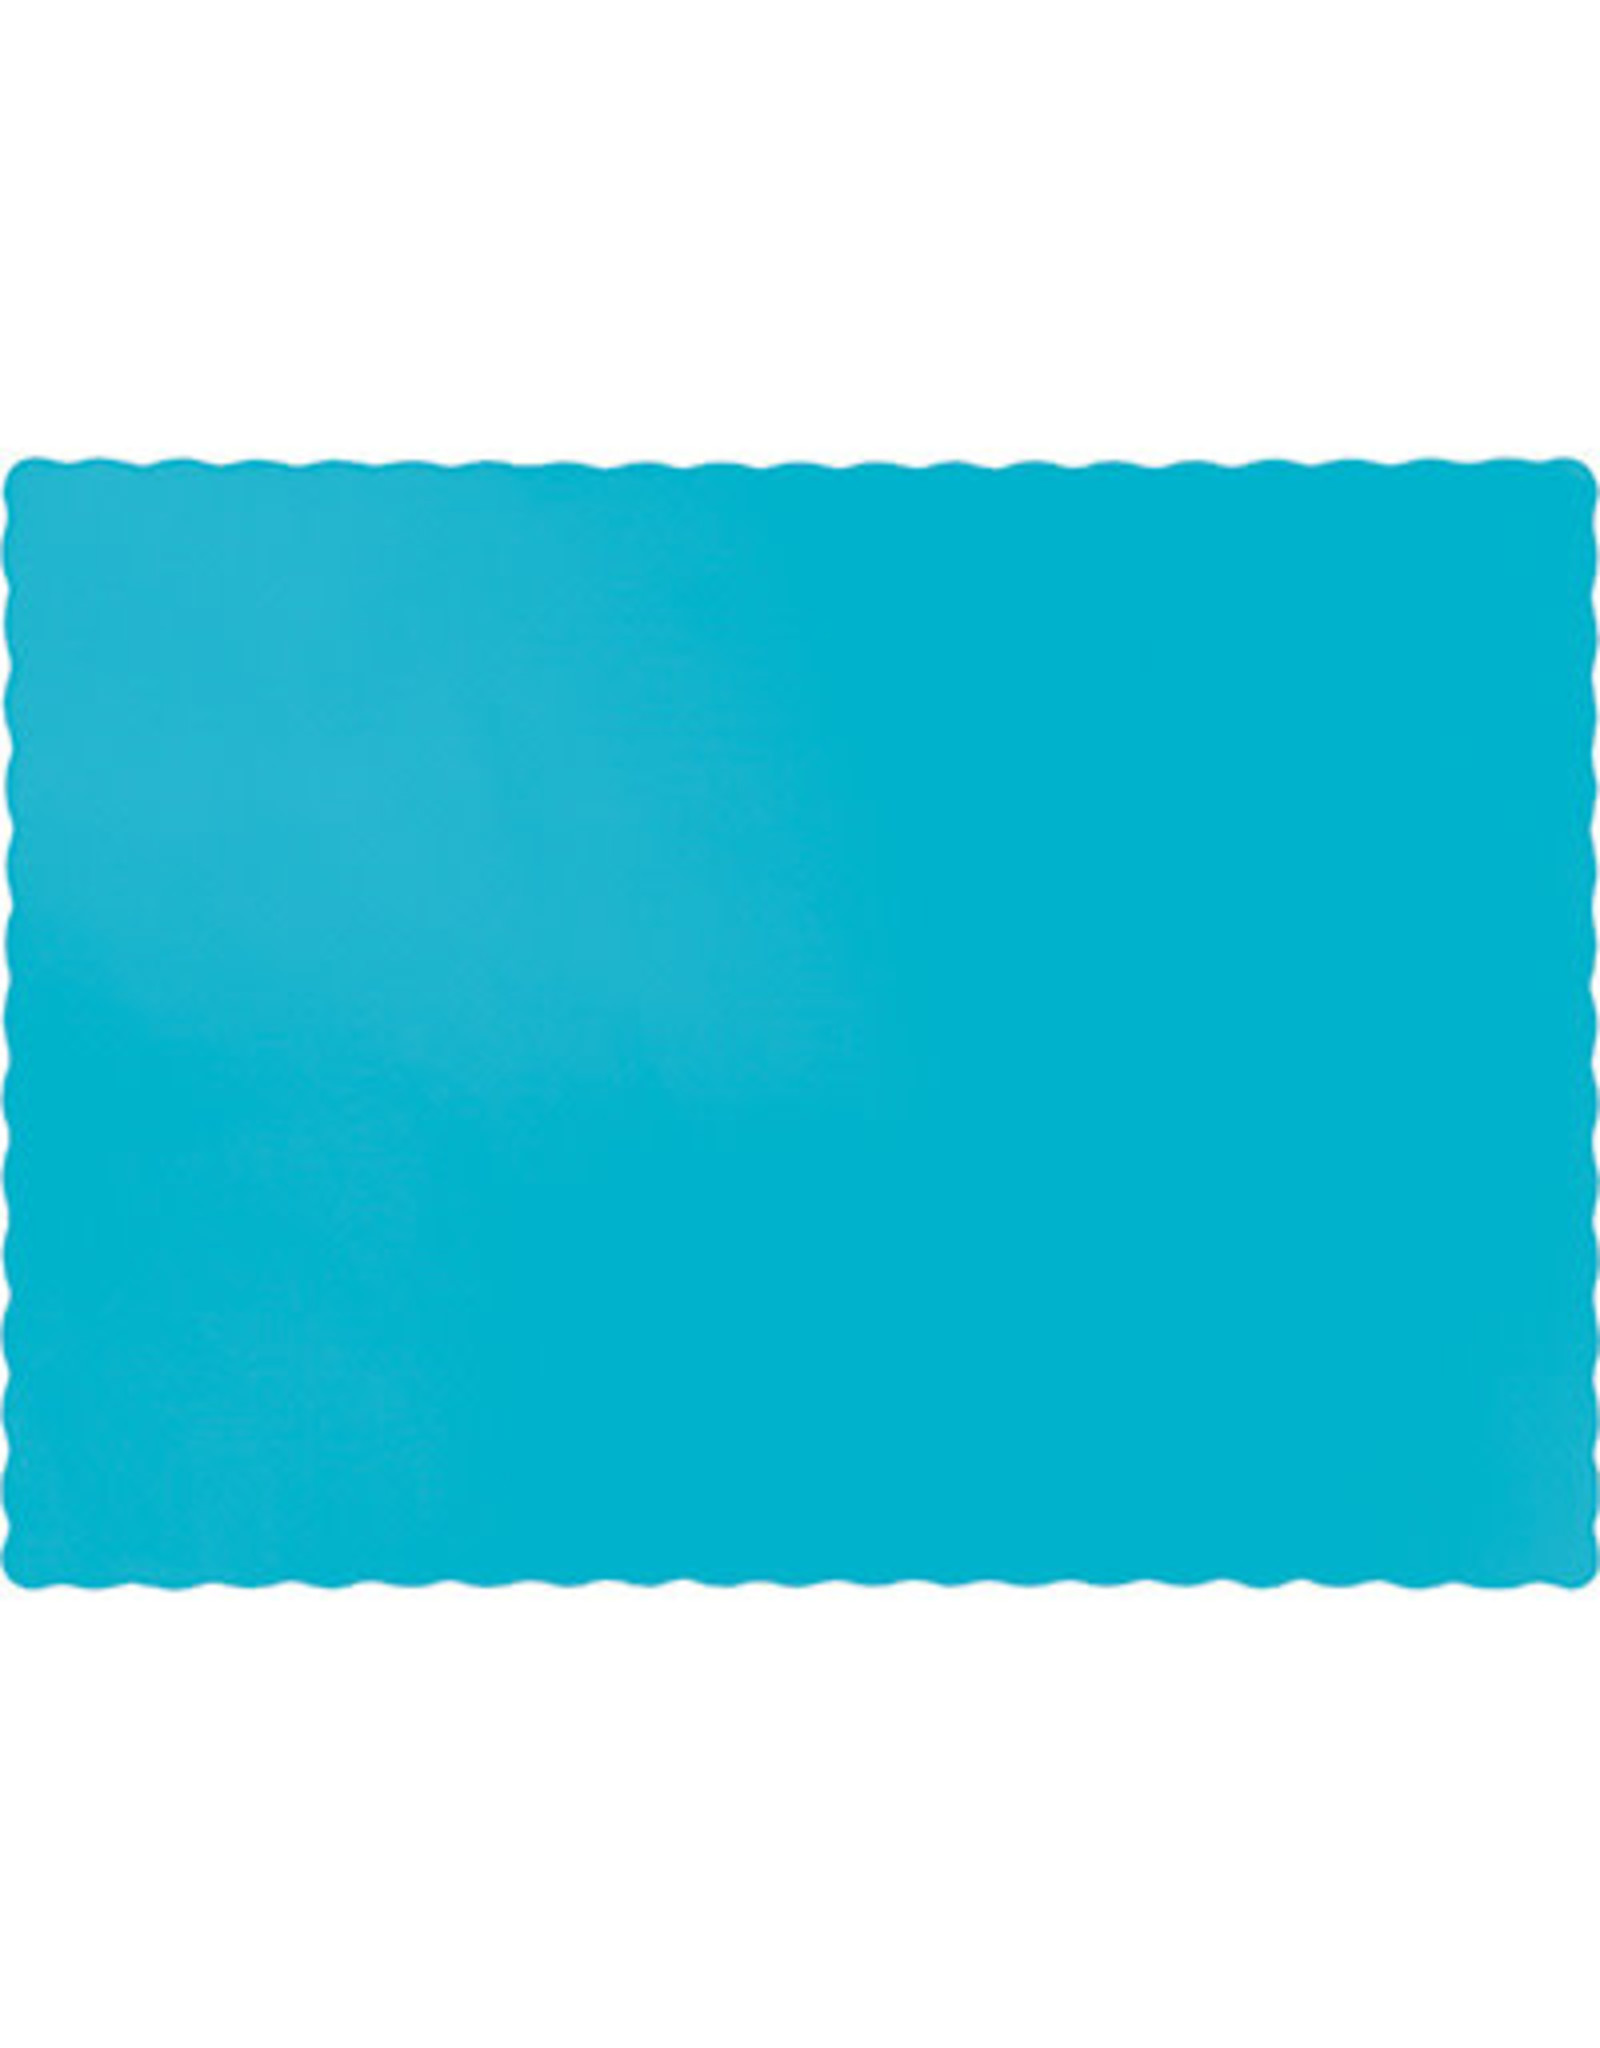 Touch of Color BERMUDA BLUE PLACEMATS